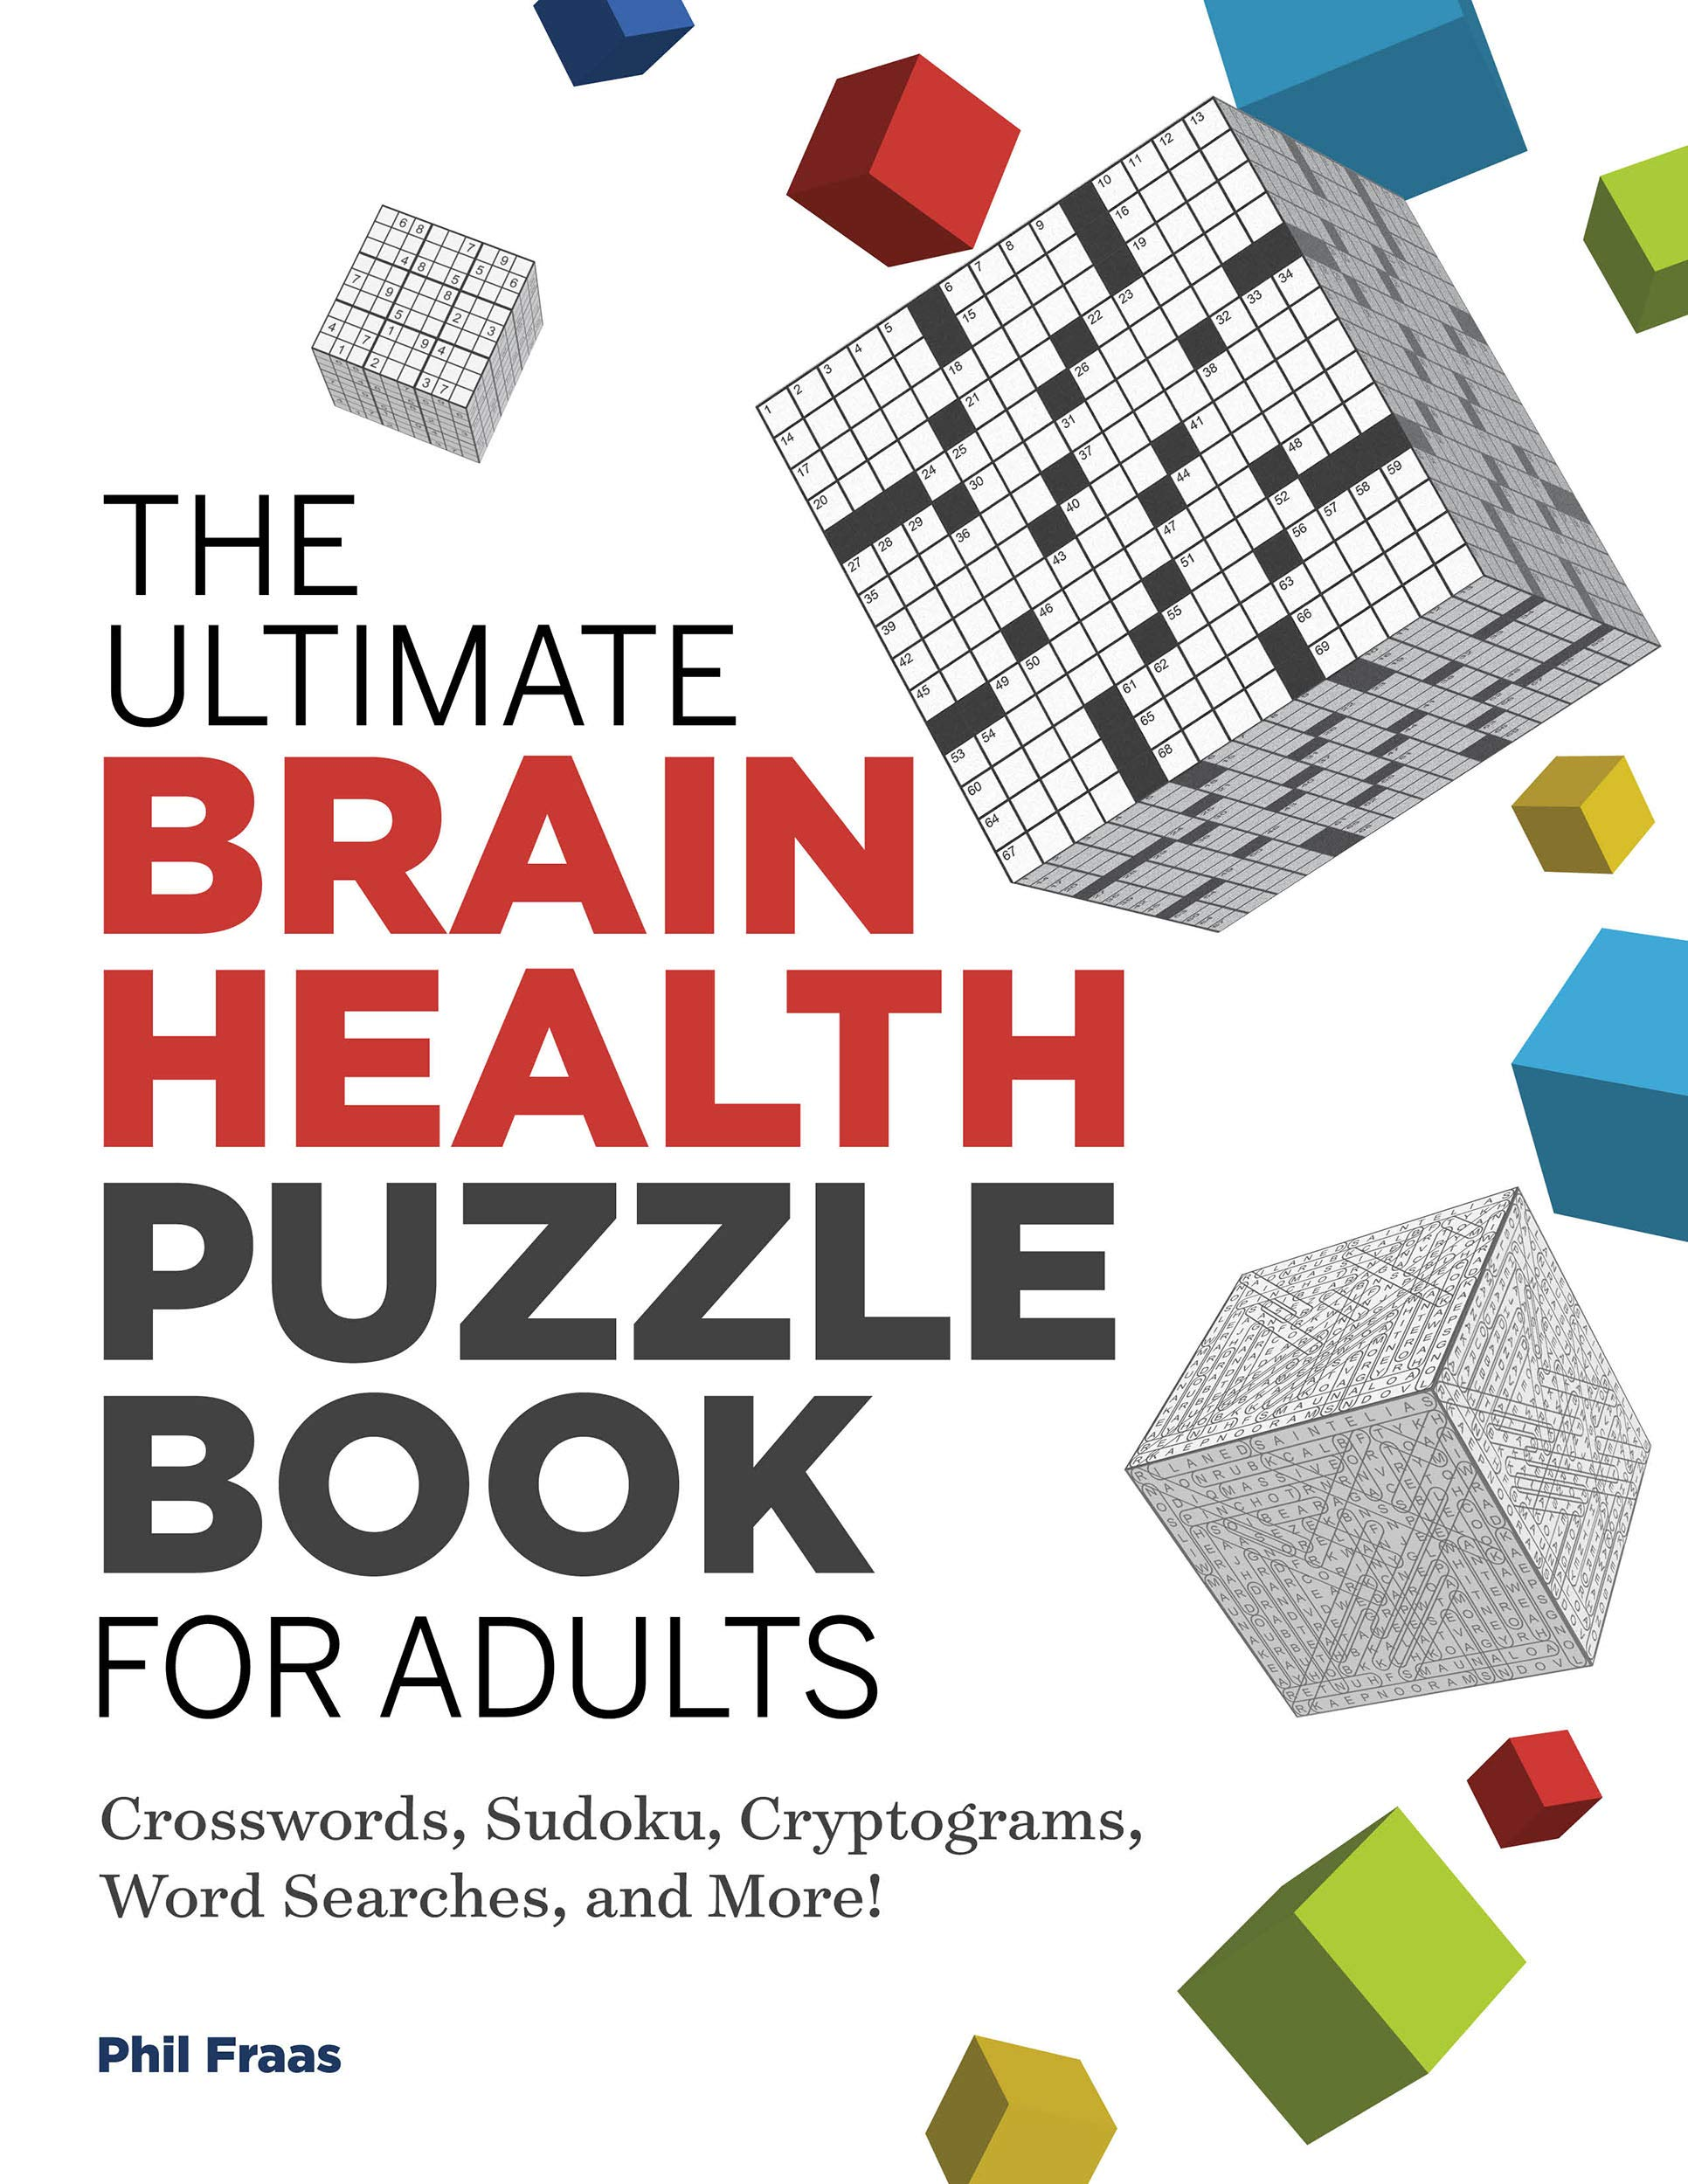 The Ultimate Brain Health Puzzle Book for Adults